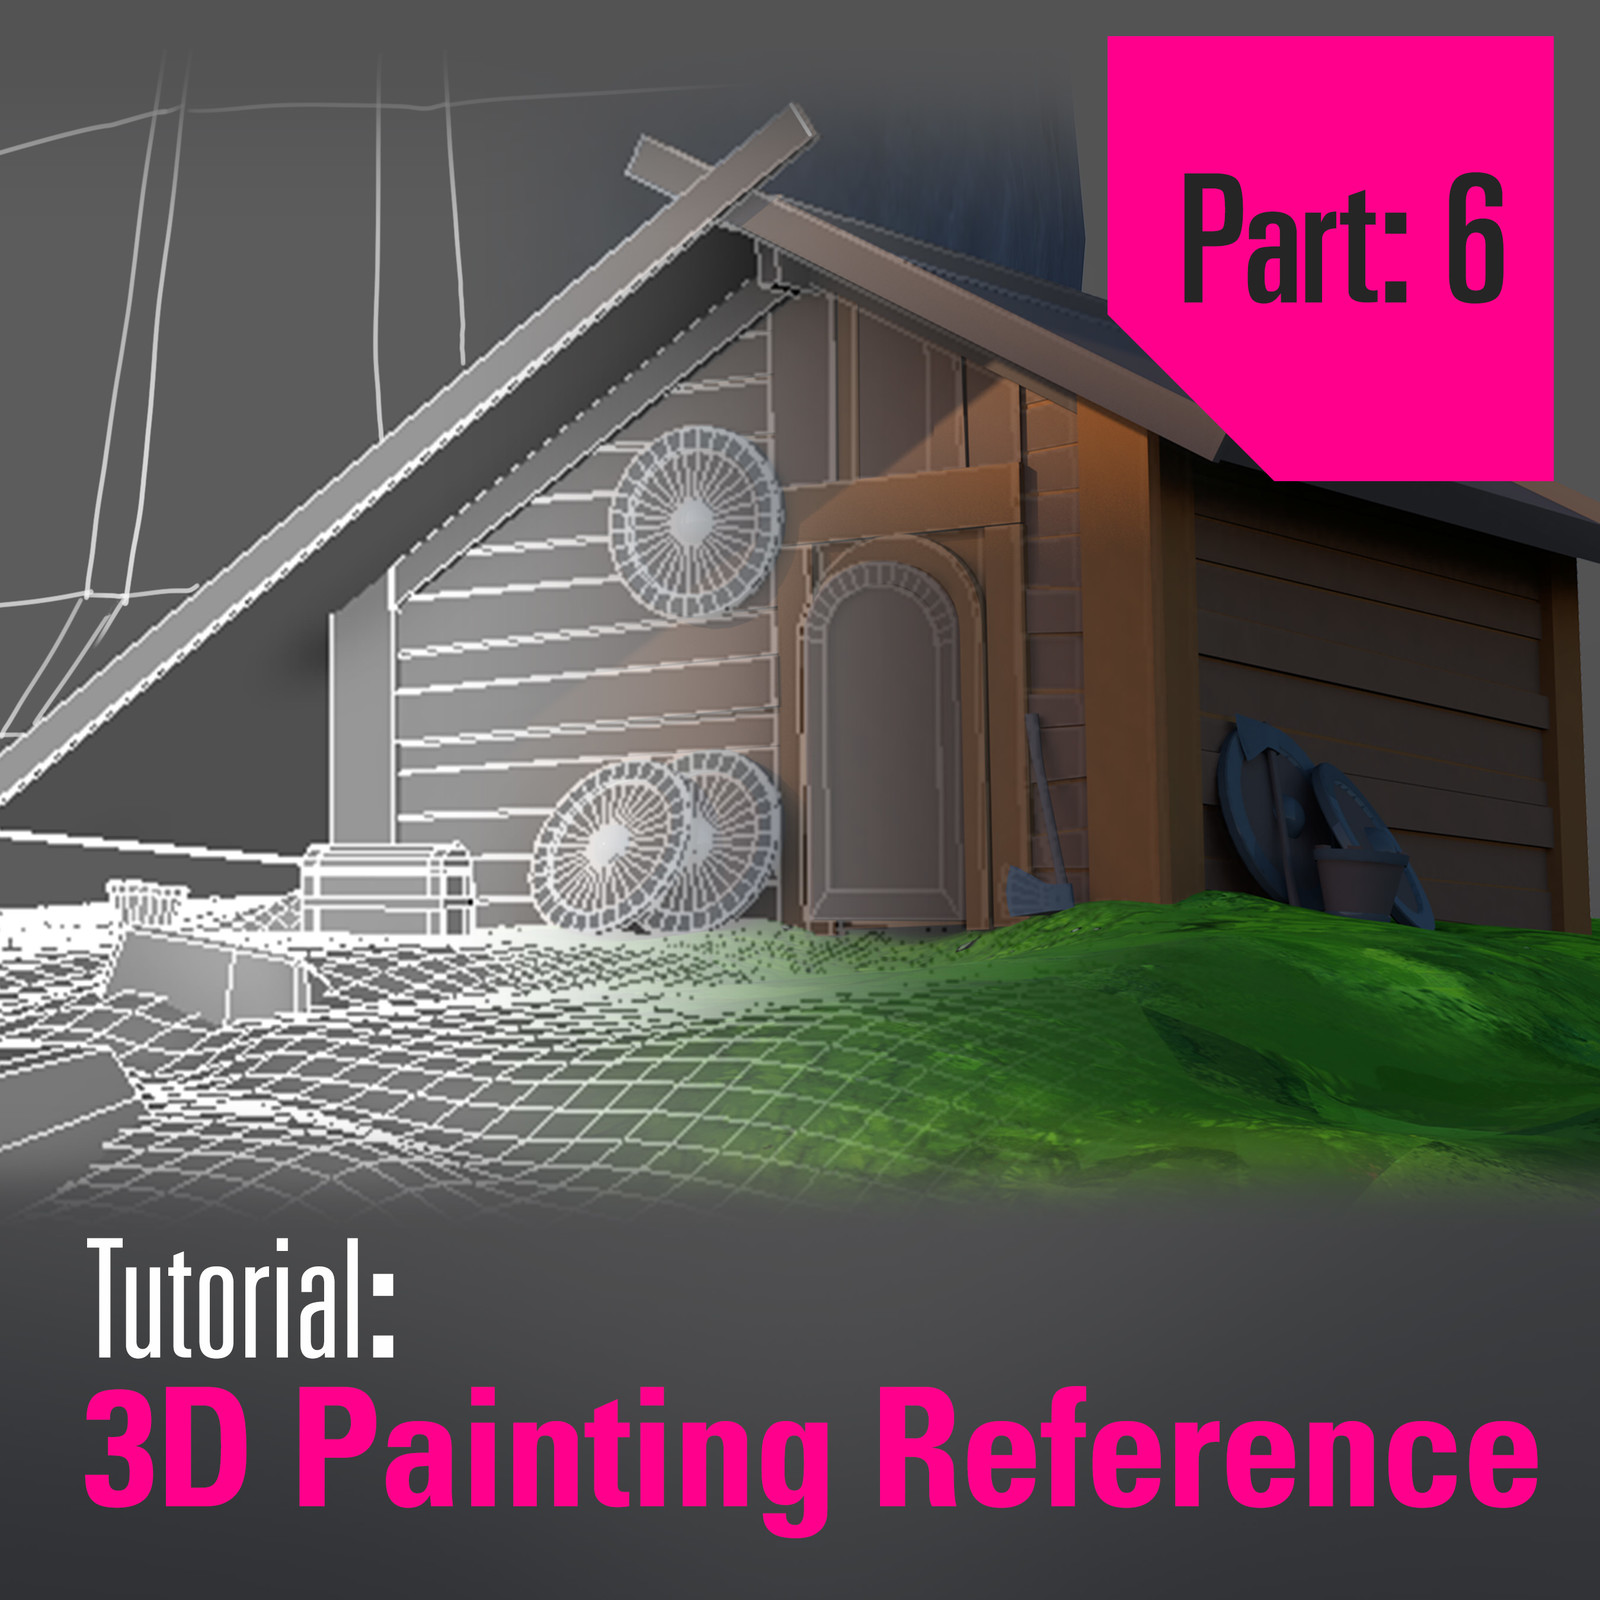 Tutorial: 3D Painting Reference Creation - Part 6